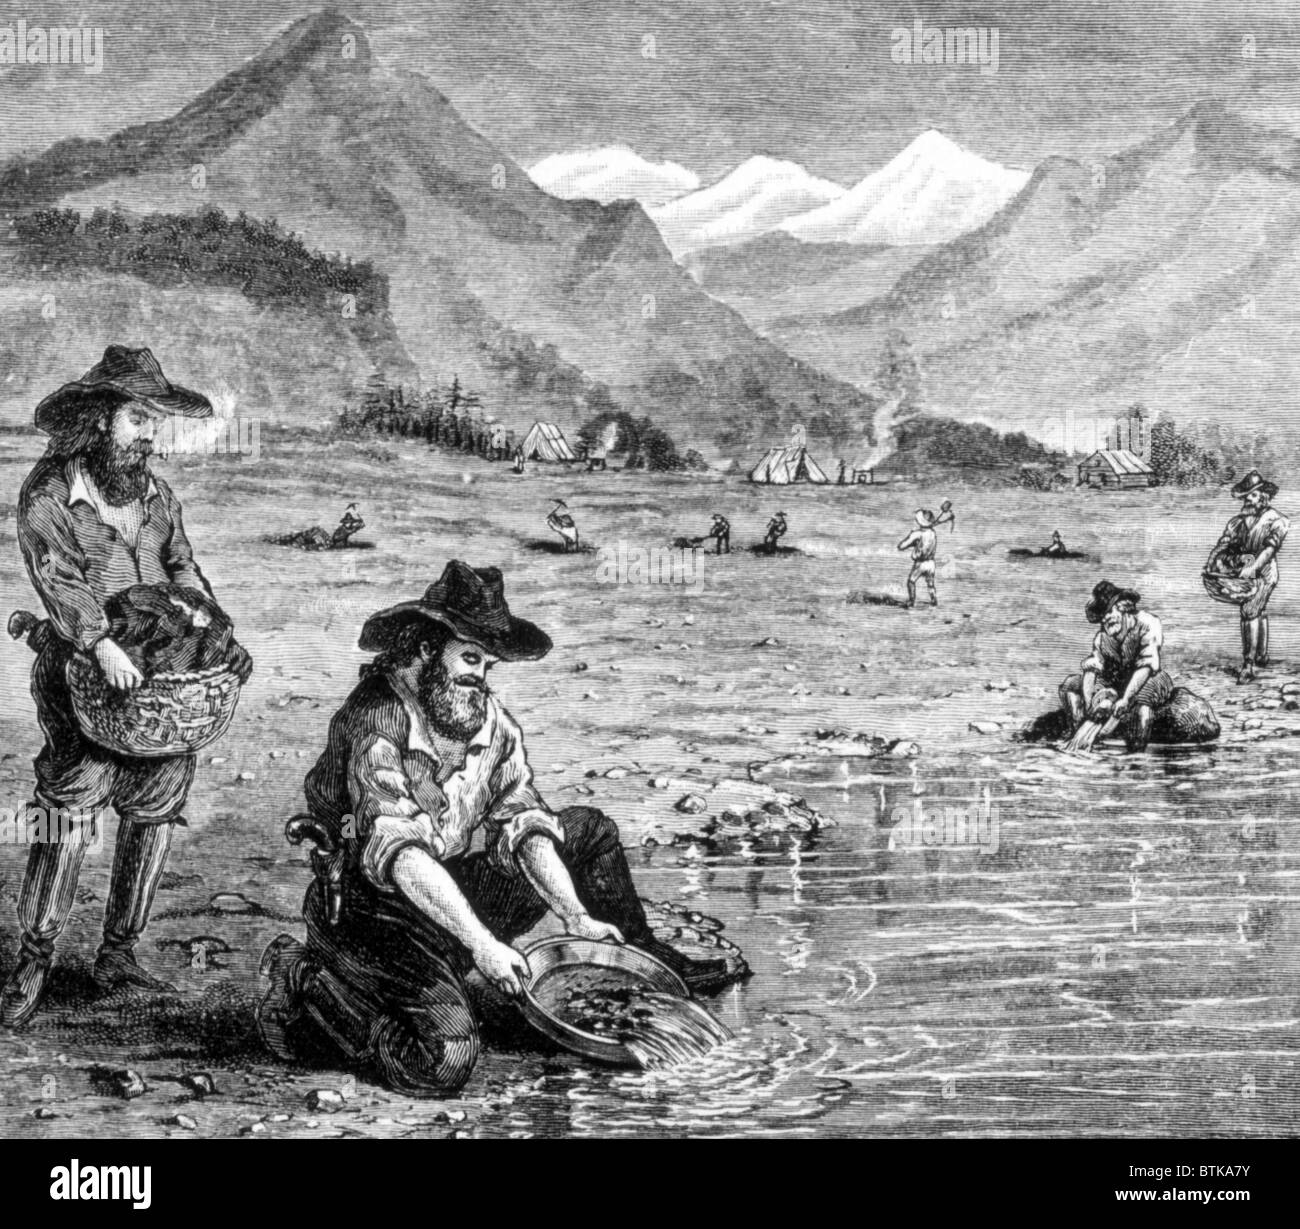 The Gold Rush, panning for gold in California, 1849, engraving 1891 - Stock Image